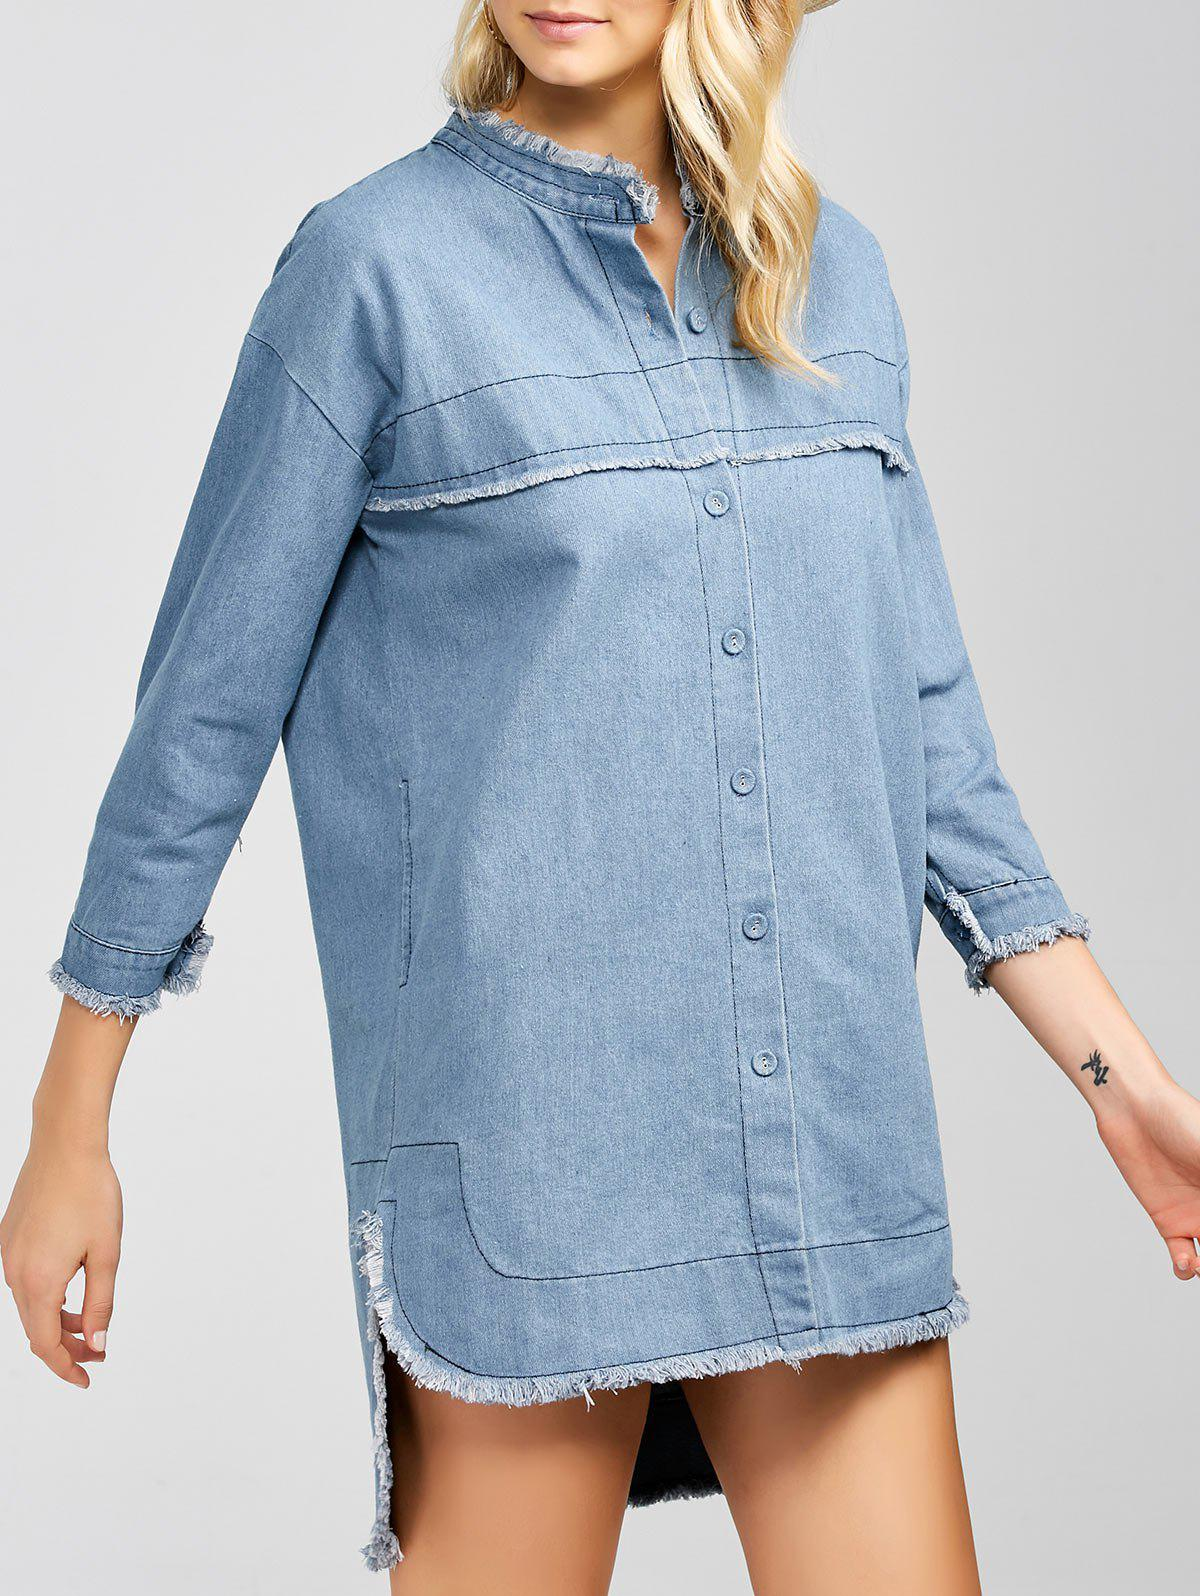 High-Low Ripped Denim Dress - LIGHT BLUE 2XL